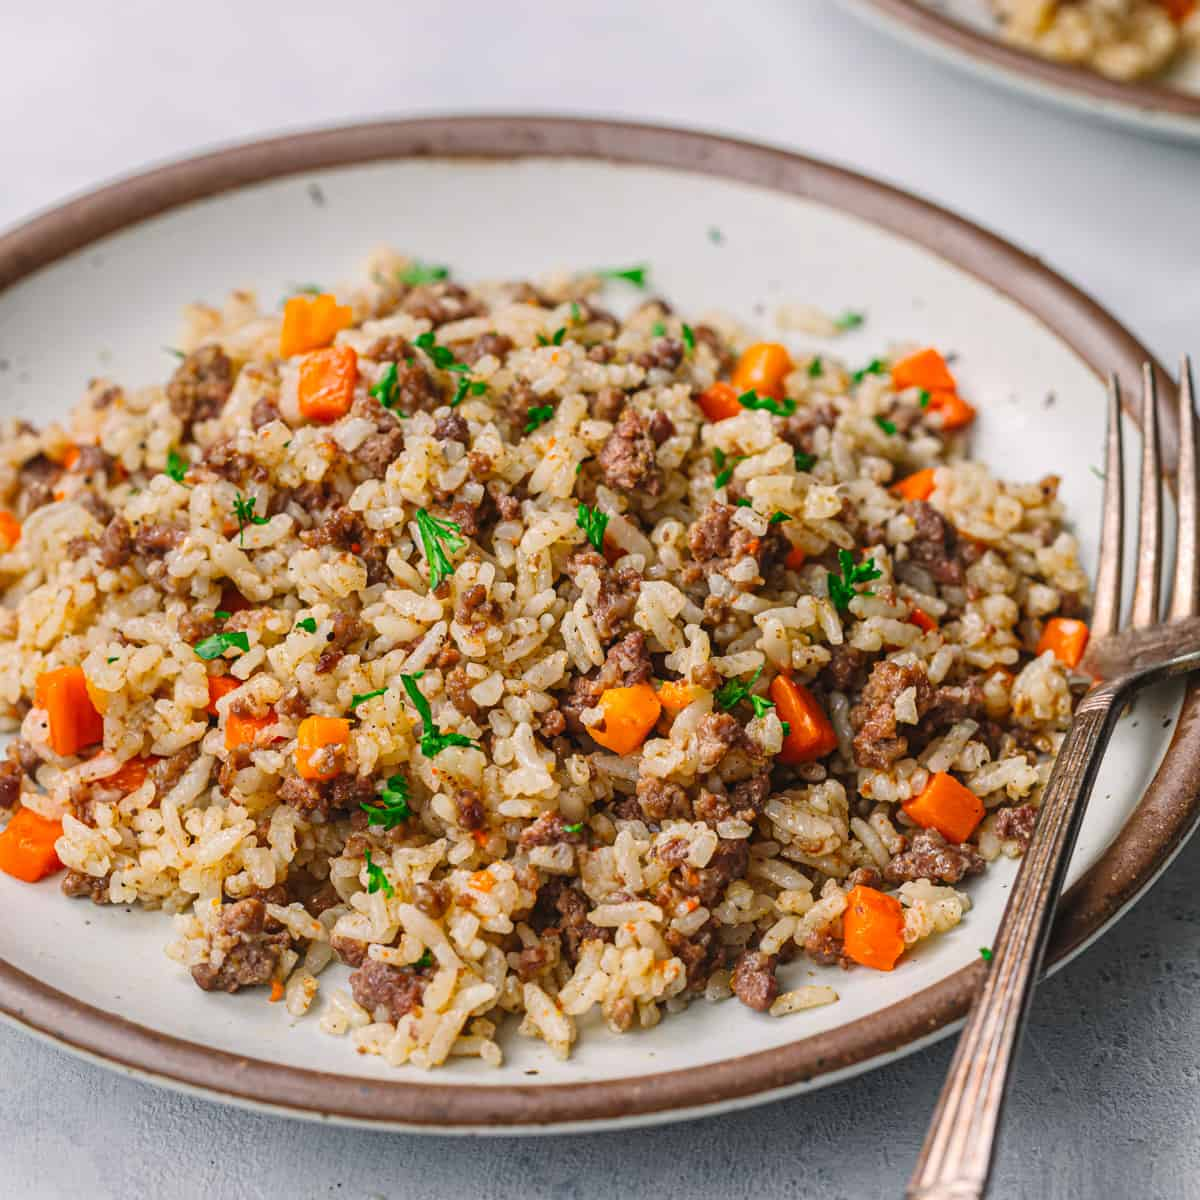 Middle Asia Ground Beef and Rice